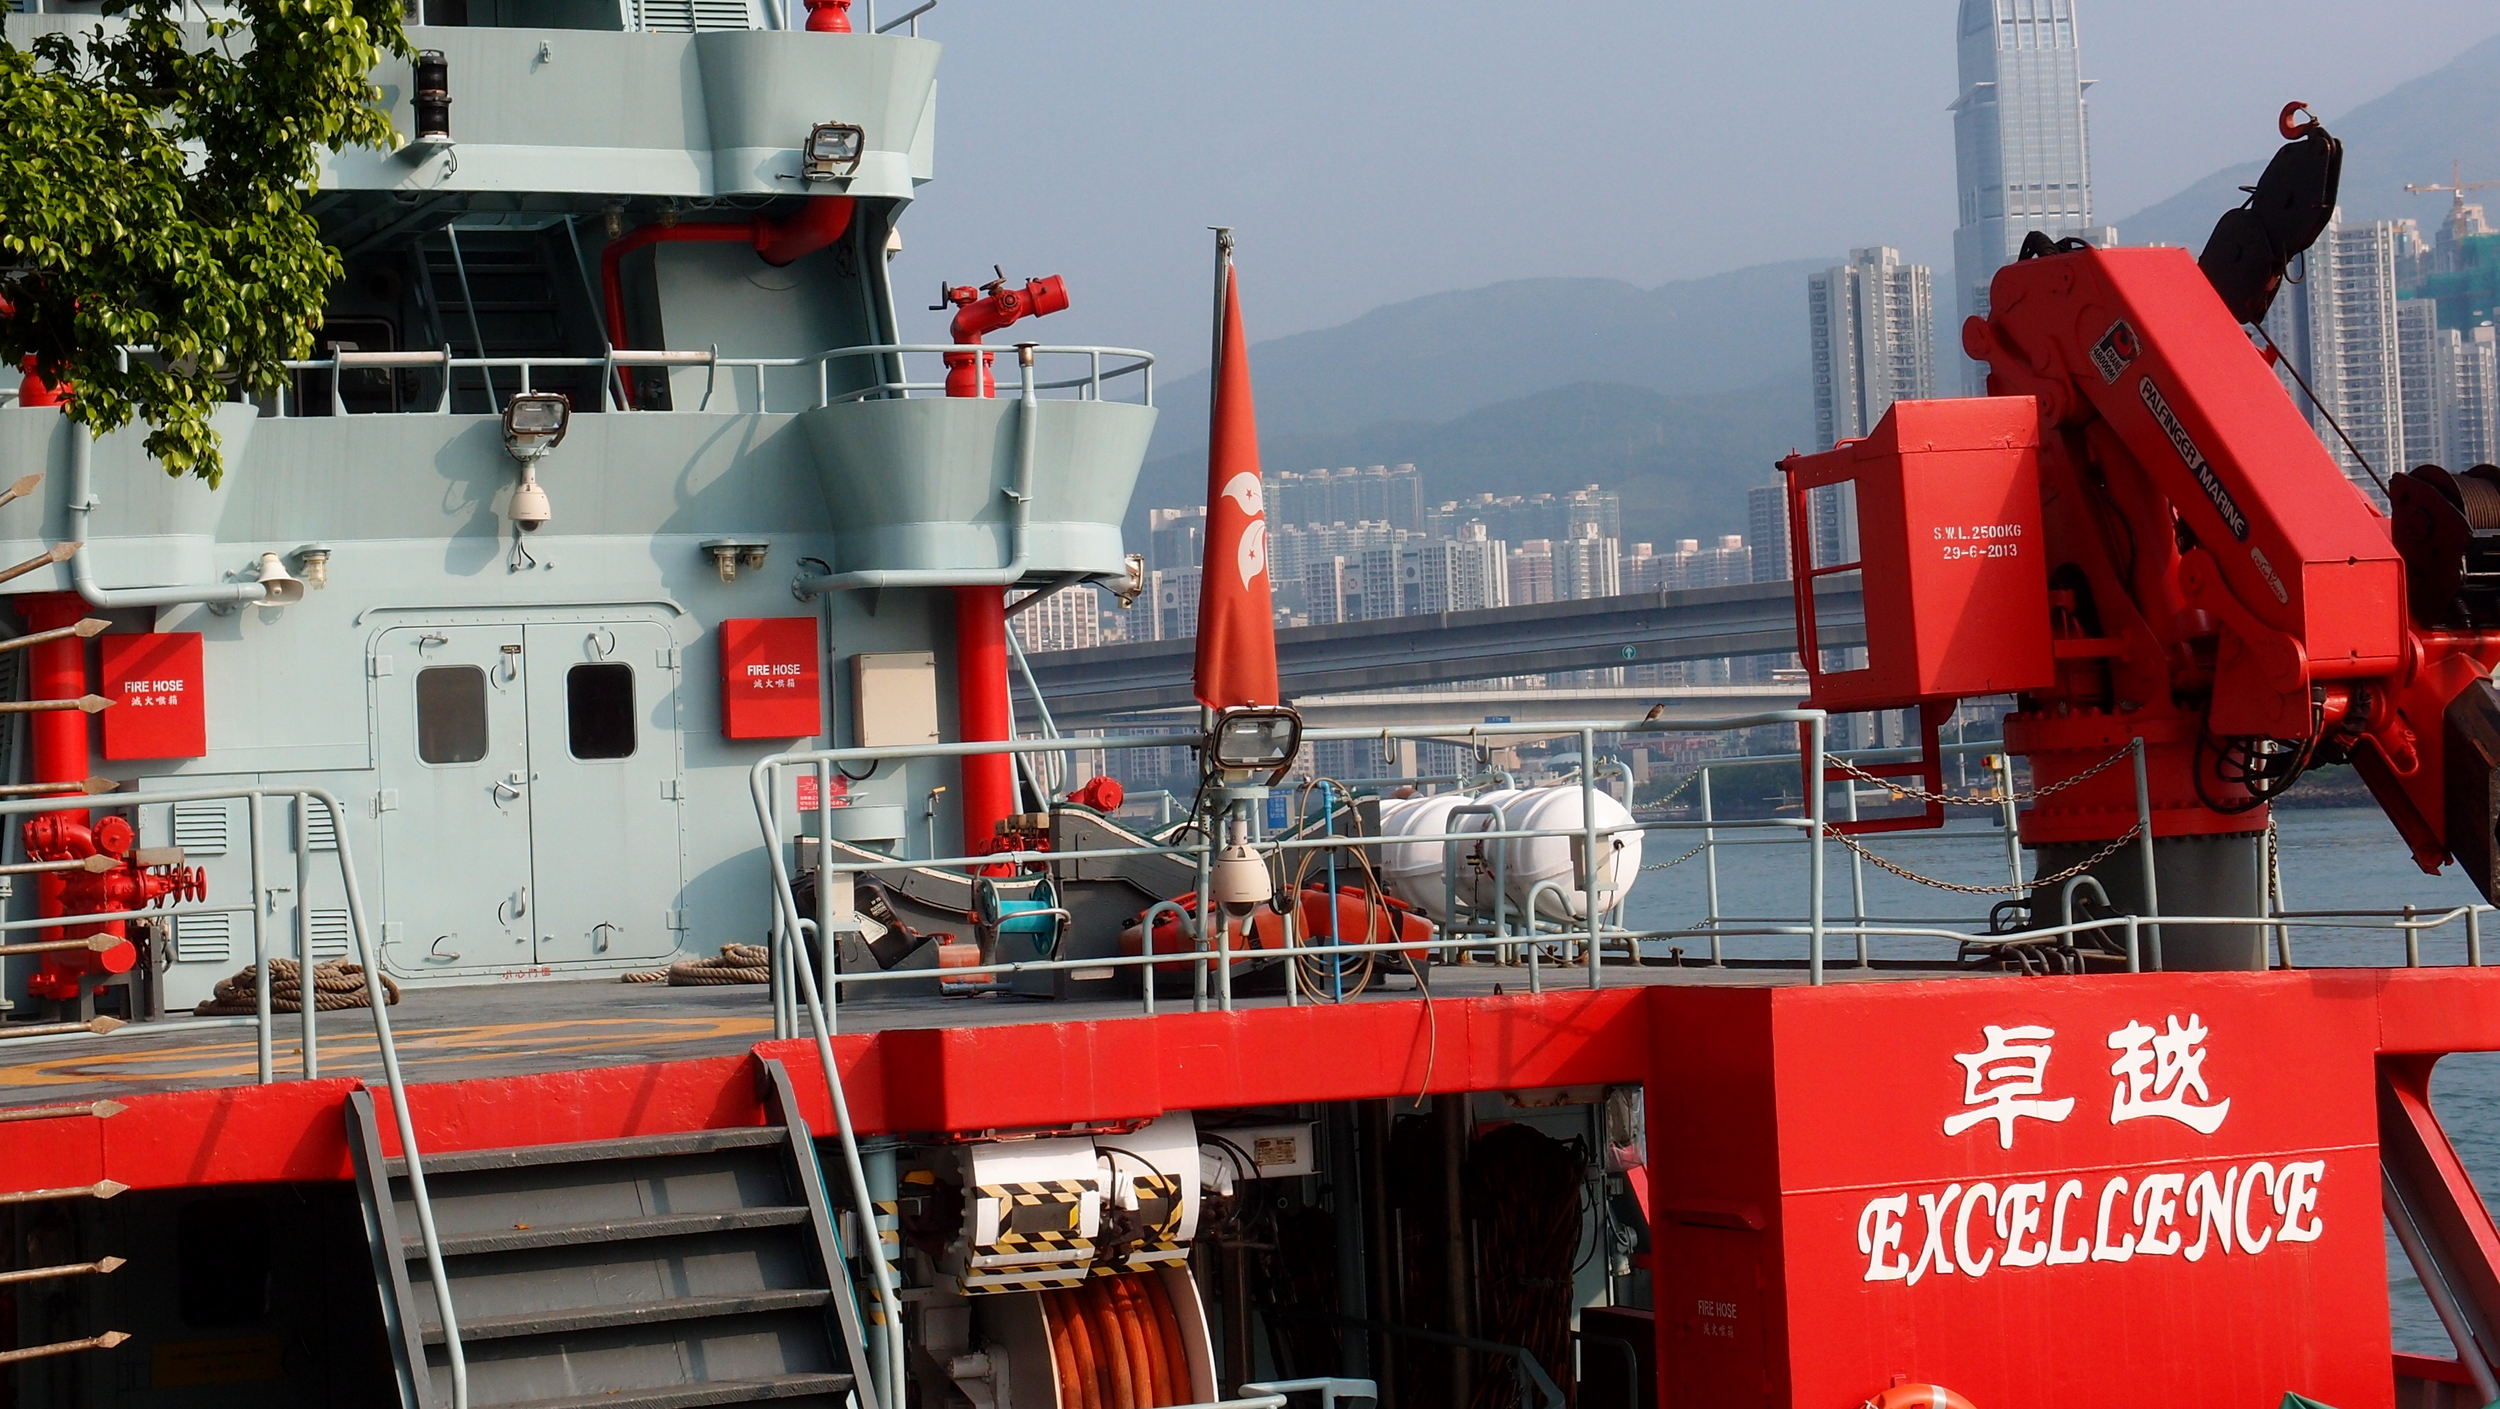 The Excellence Fire Boat